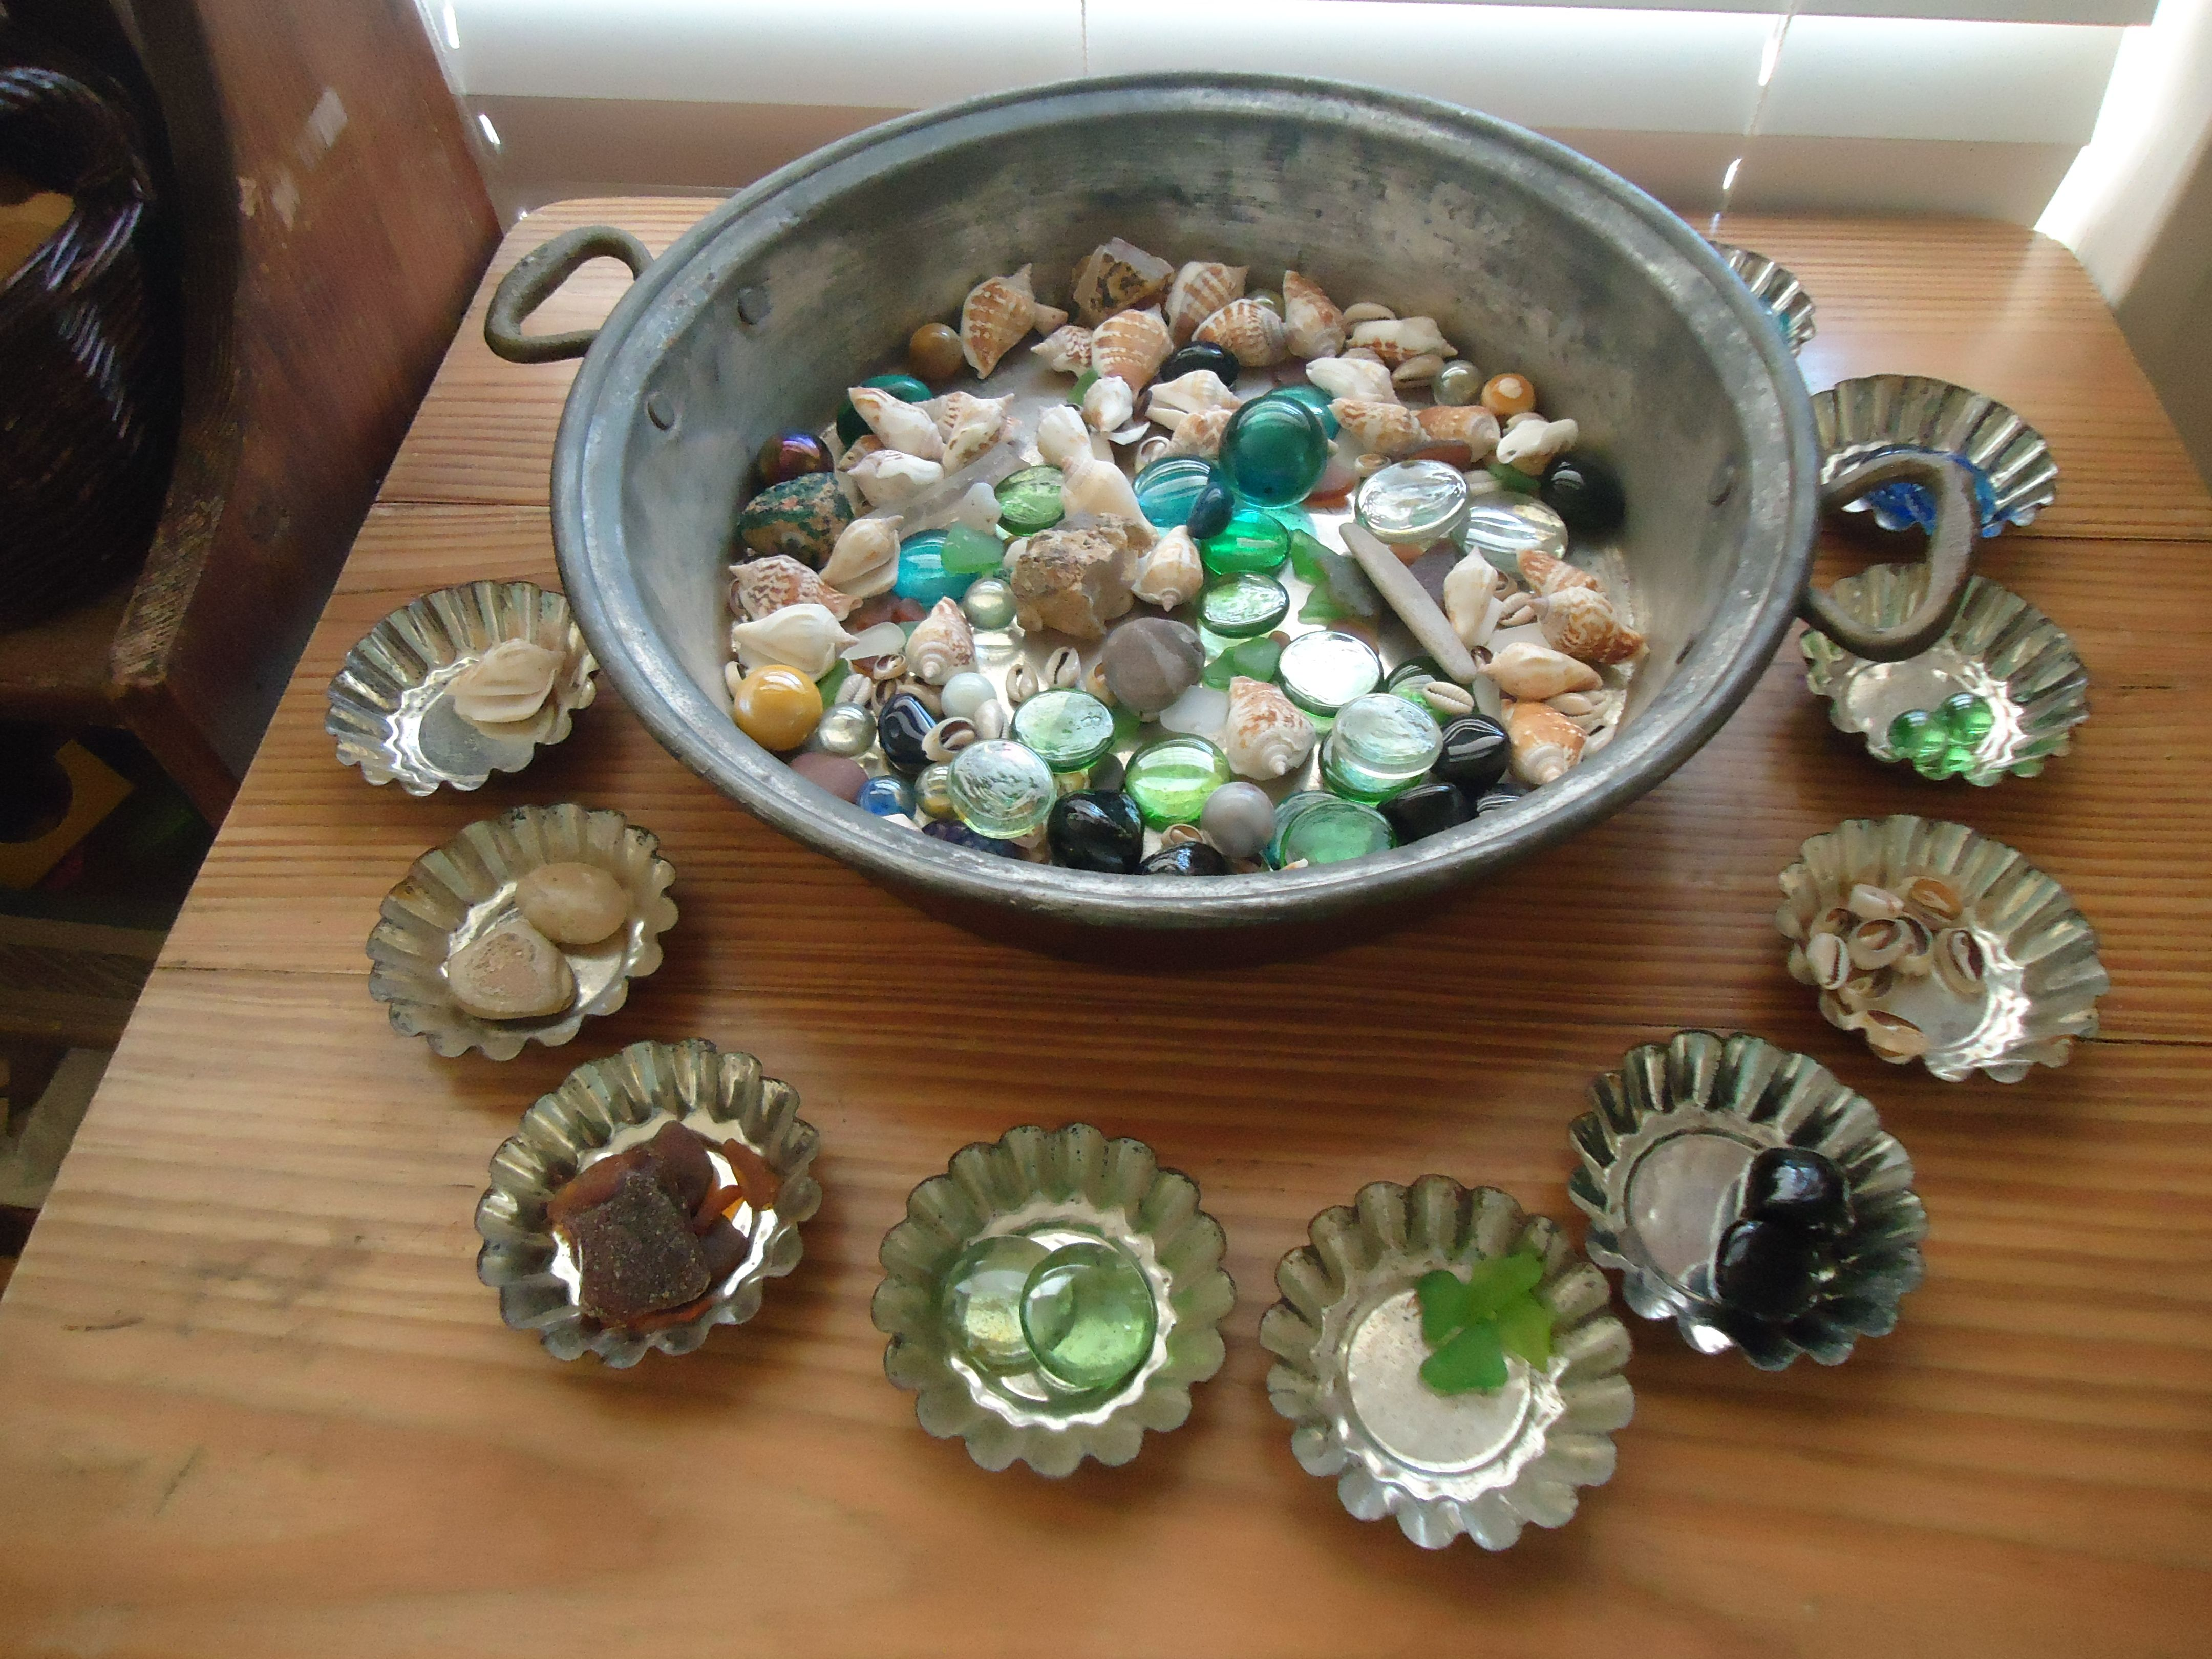 Sorting and exploring seashells and marbles providing beautiful and interesting looking - Cap bagno reggio emilia ...